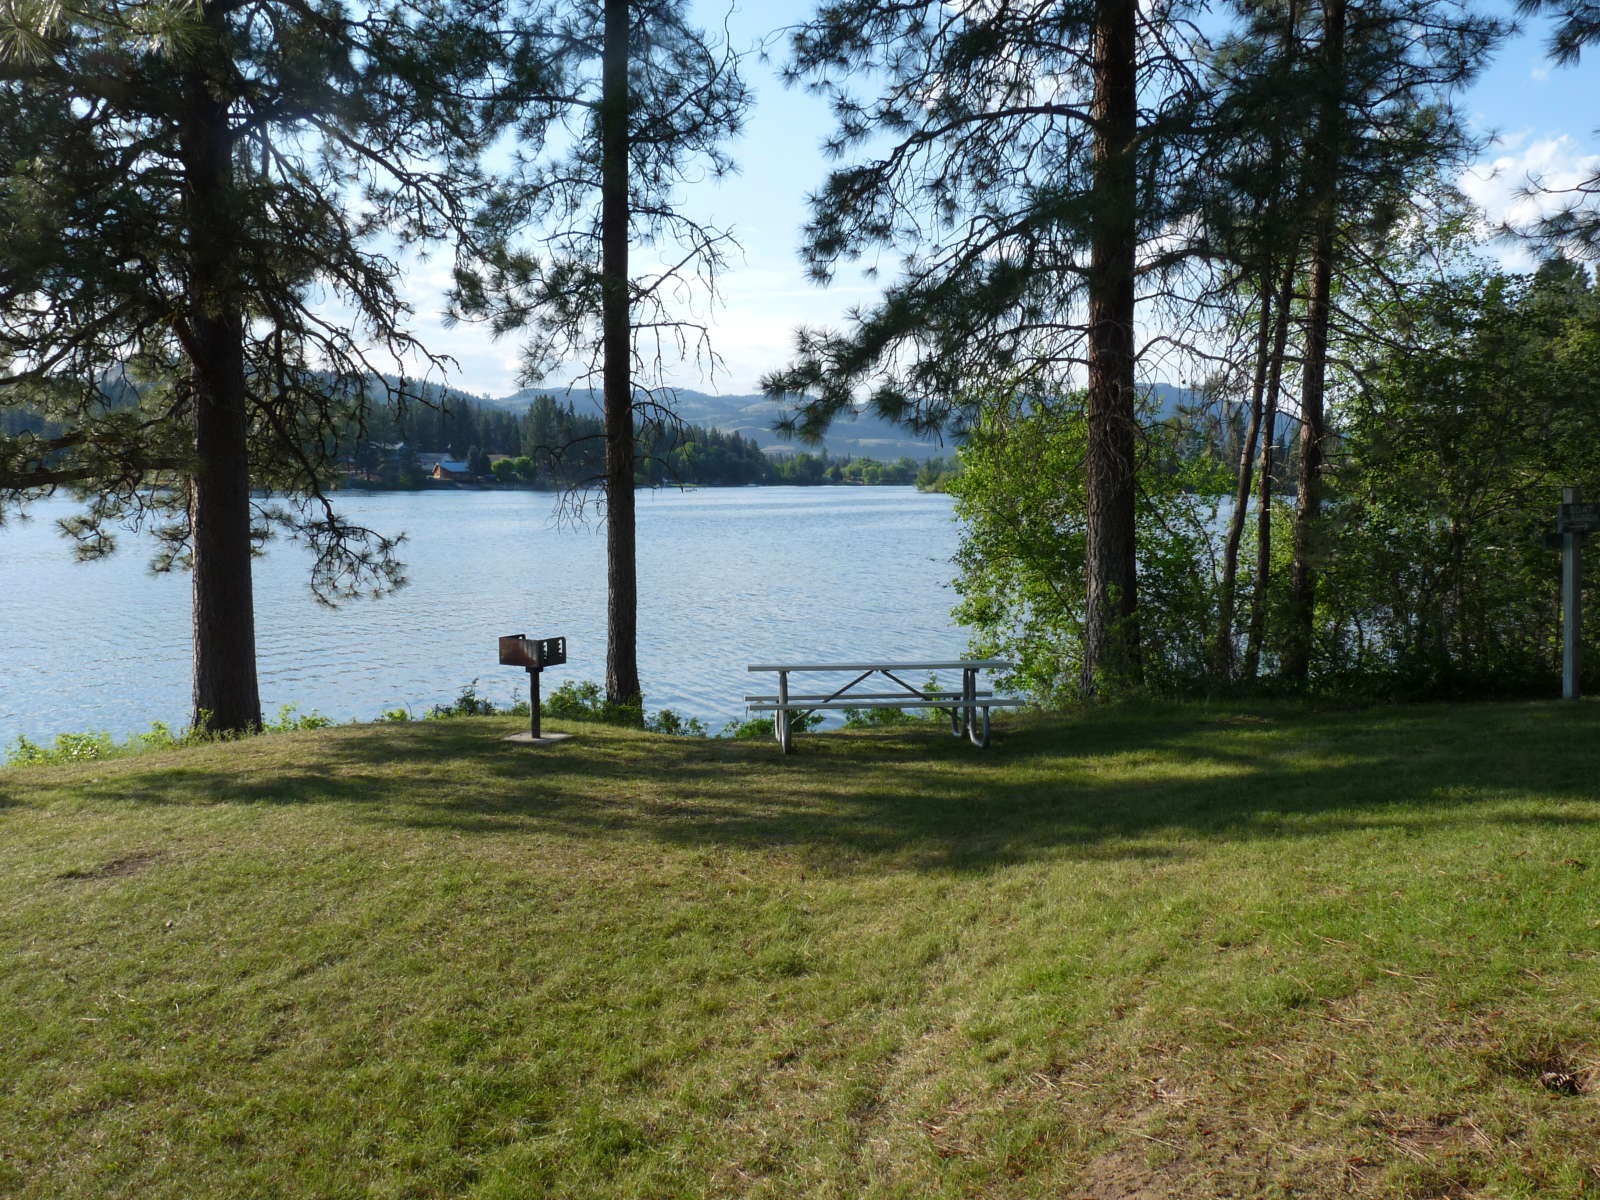 Curlew Lake Campground, Curlew Lake, WA: 4 photos